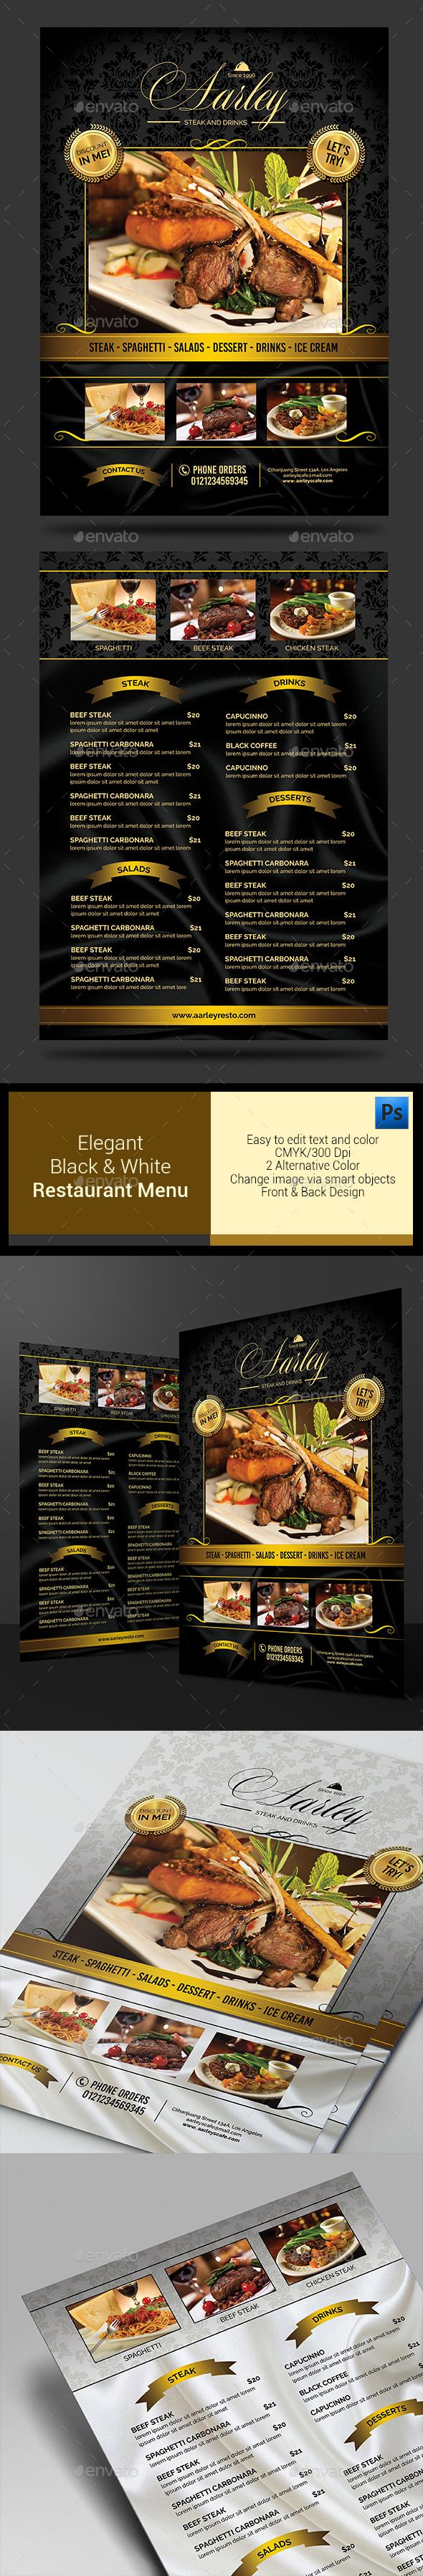 Elegant Black  White Restaurant Menu  White Restaurant Food